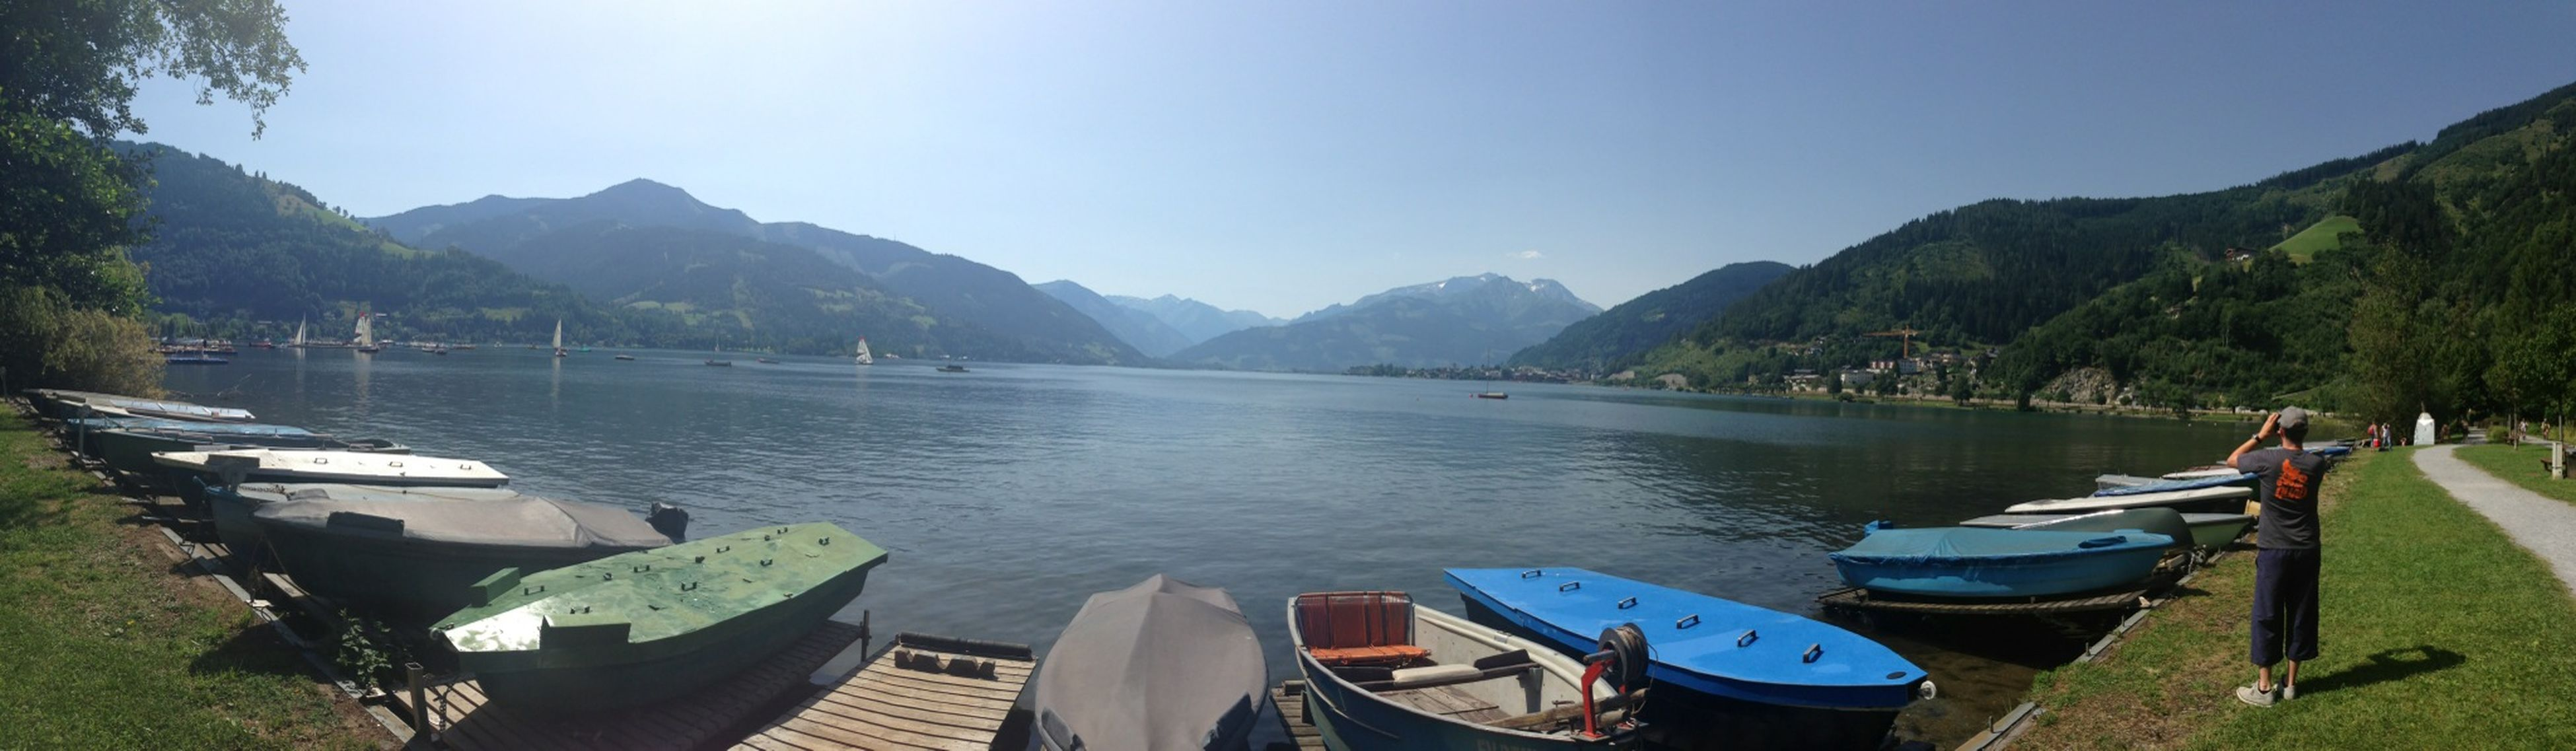 mountain, water, nautical vessel, mountain range, moored, scenics, tranquil scene, lake, tranquility, transportation, boat, clear sky, sky, beauty in nature, tree, nature, mode of transport, sunlight, river, day